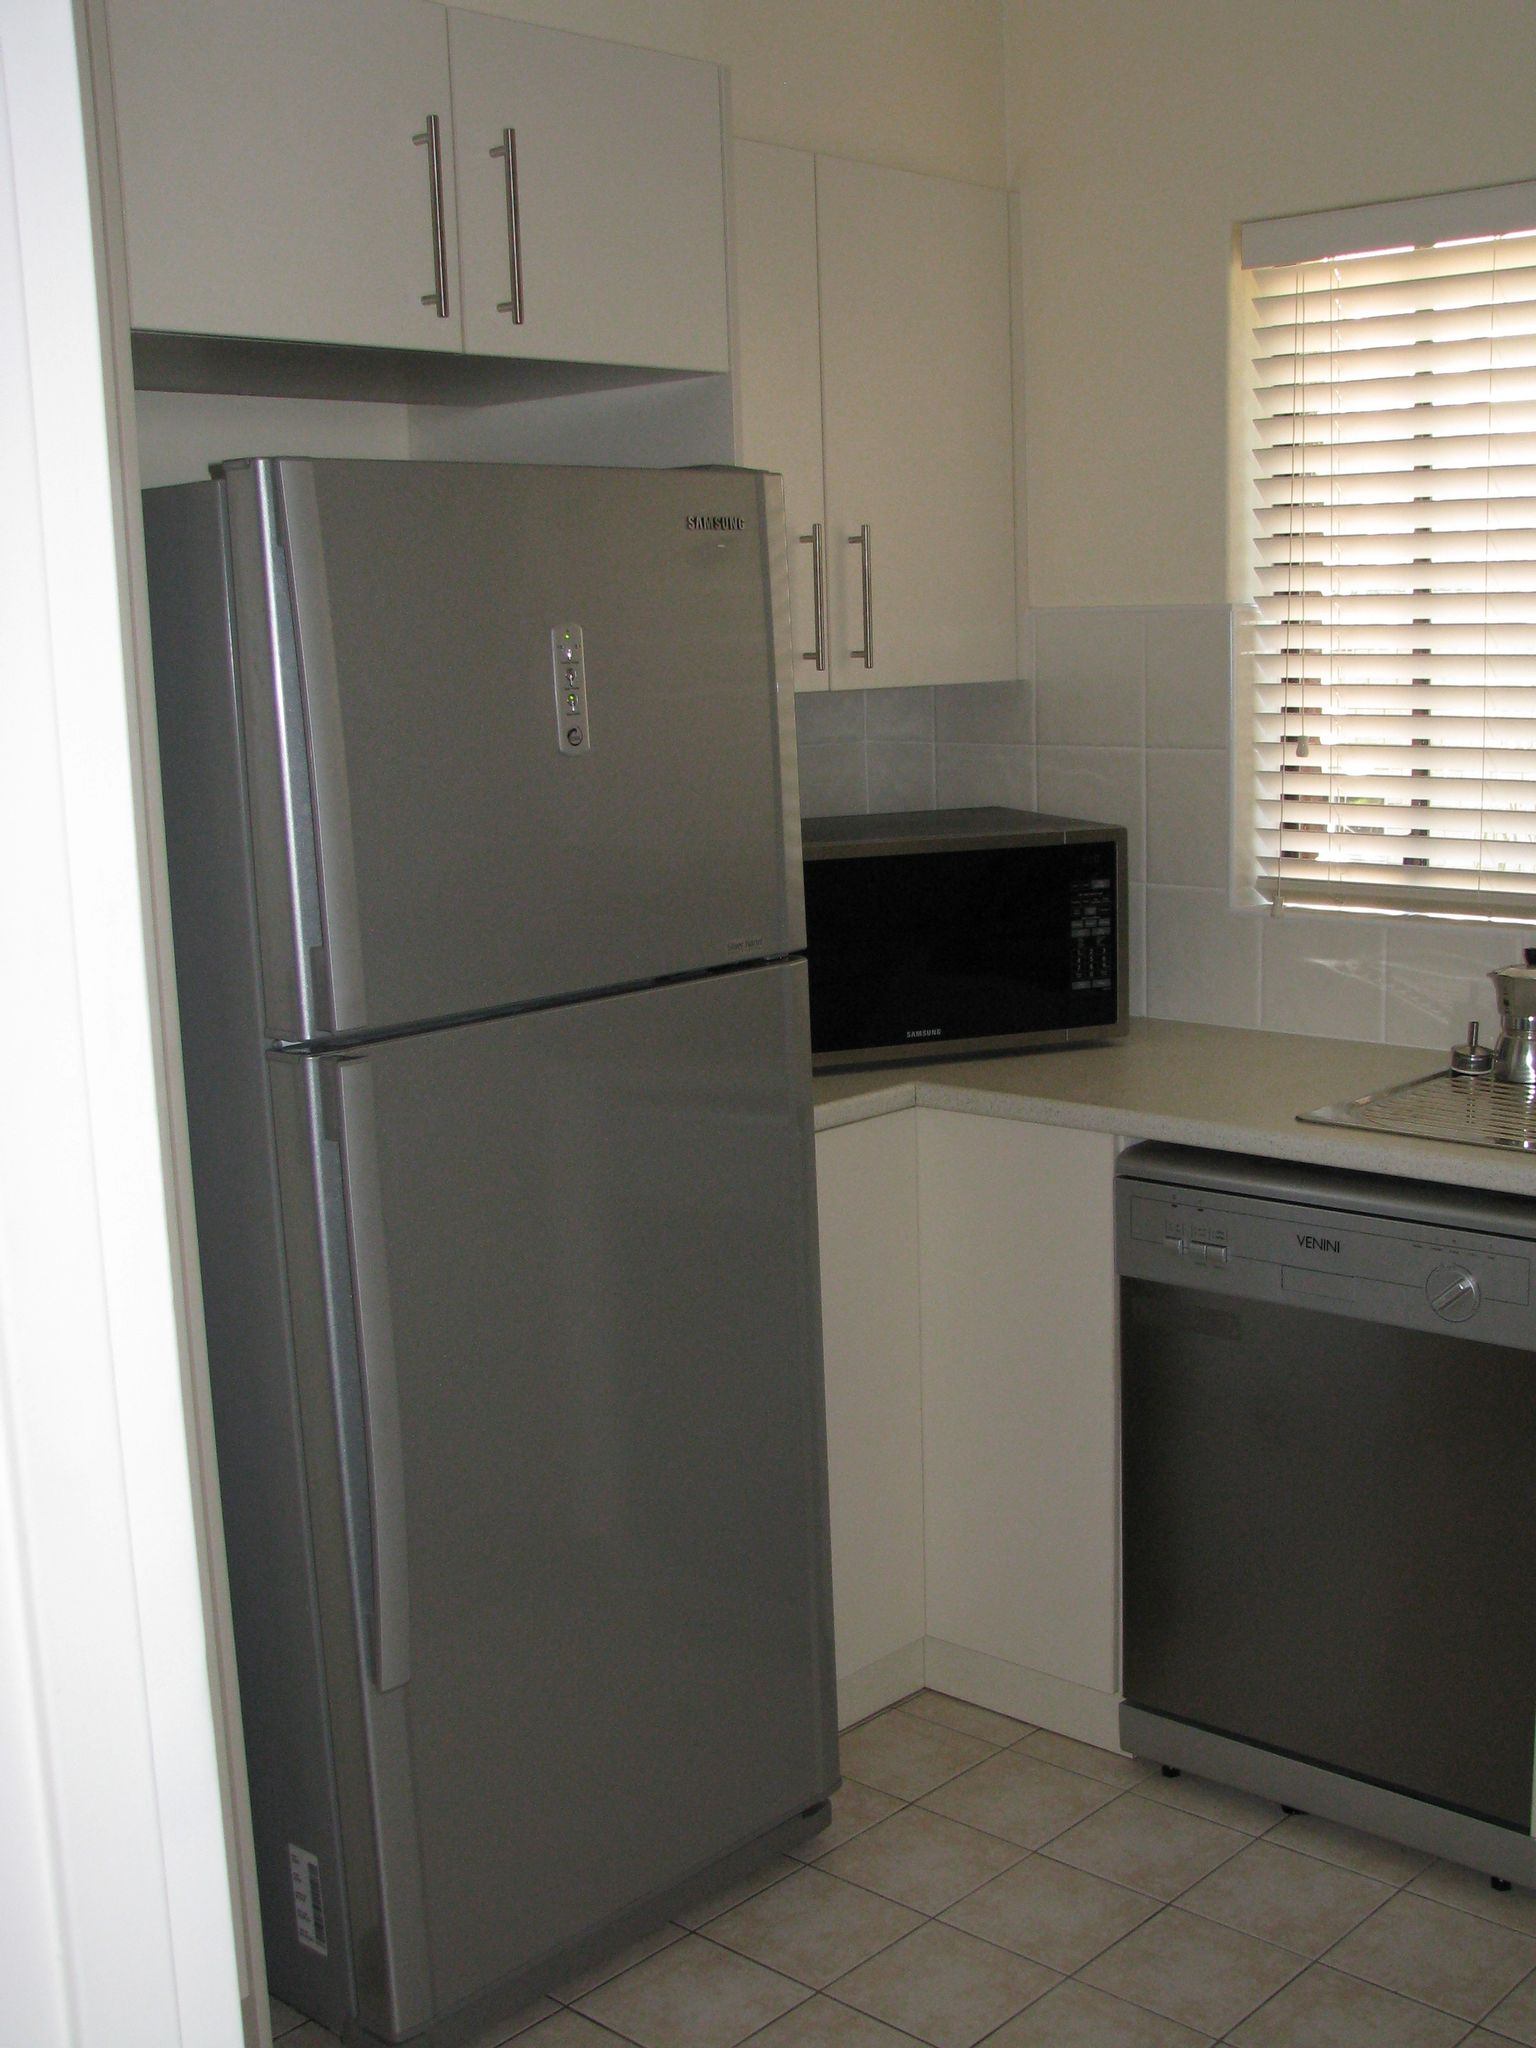 A photo of the corner of the kitchen, with the dishwasher on the right, a microwave jammed into the corner, and a metal-fronted fridge to the left of the microwave.